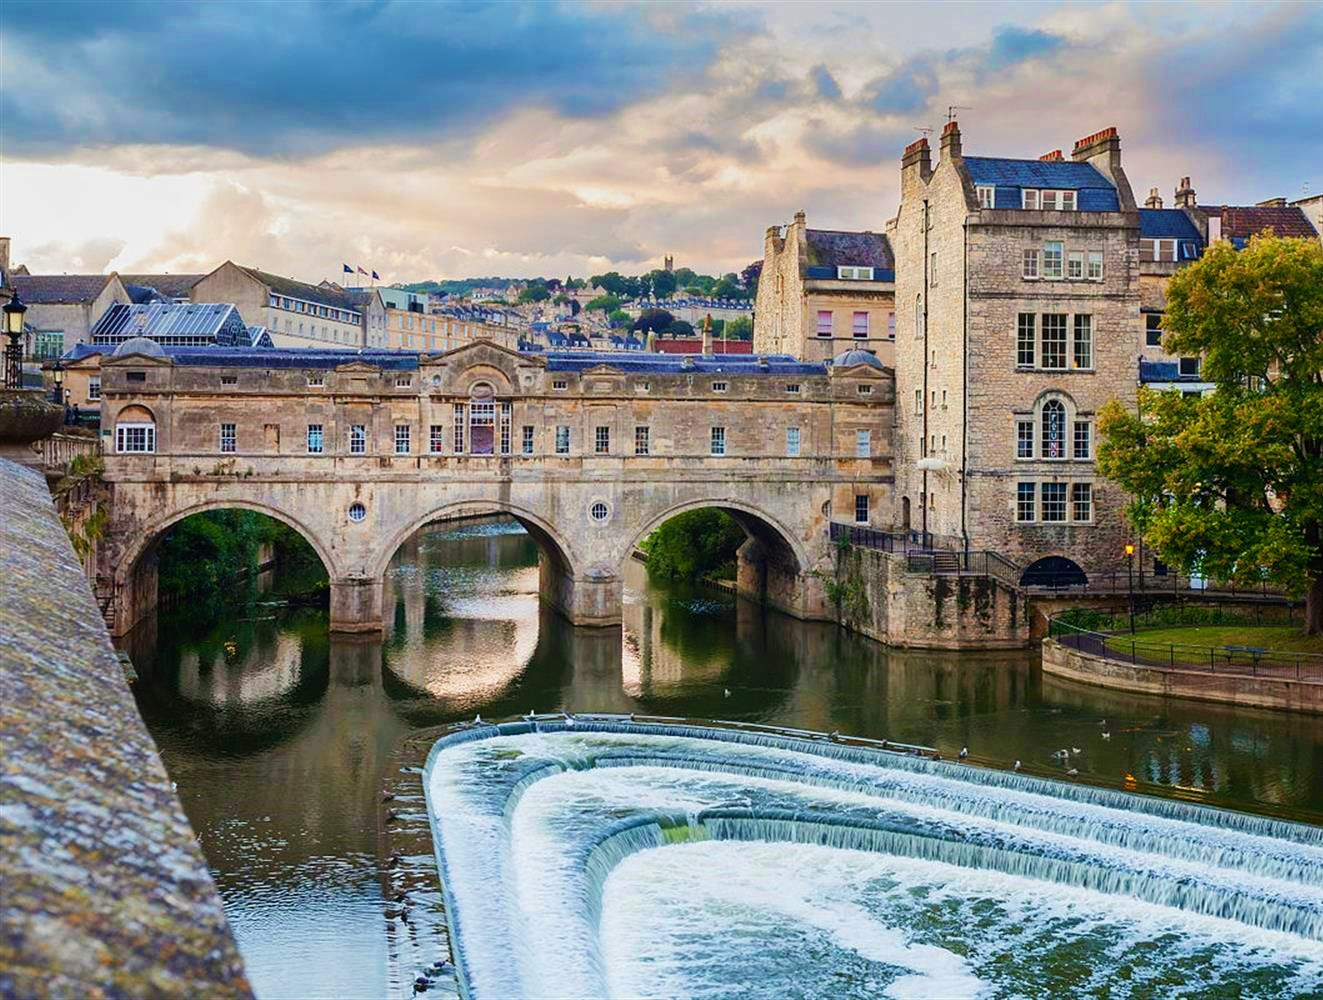 Pulteney Bridge, Bath, England. Credit Diego Delso